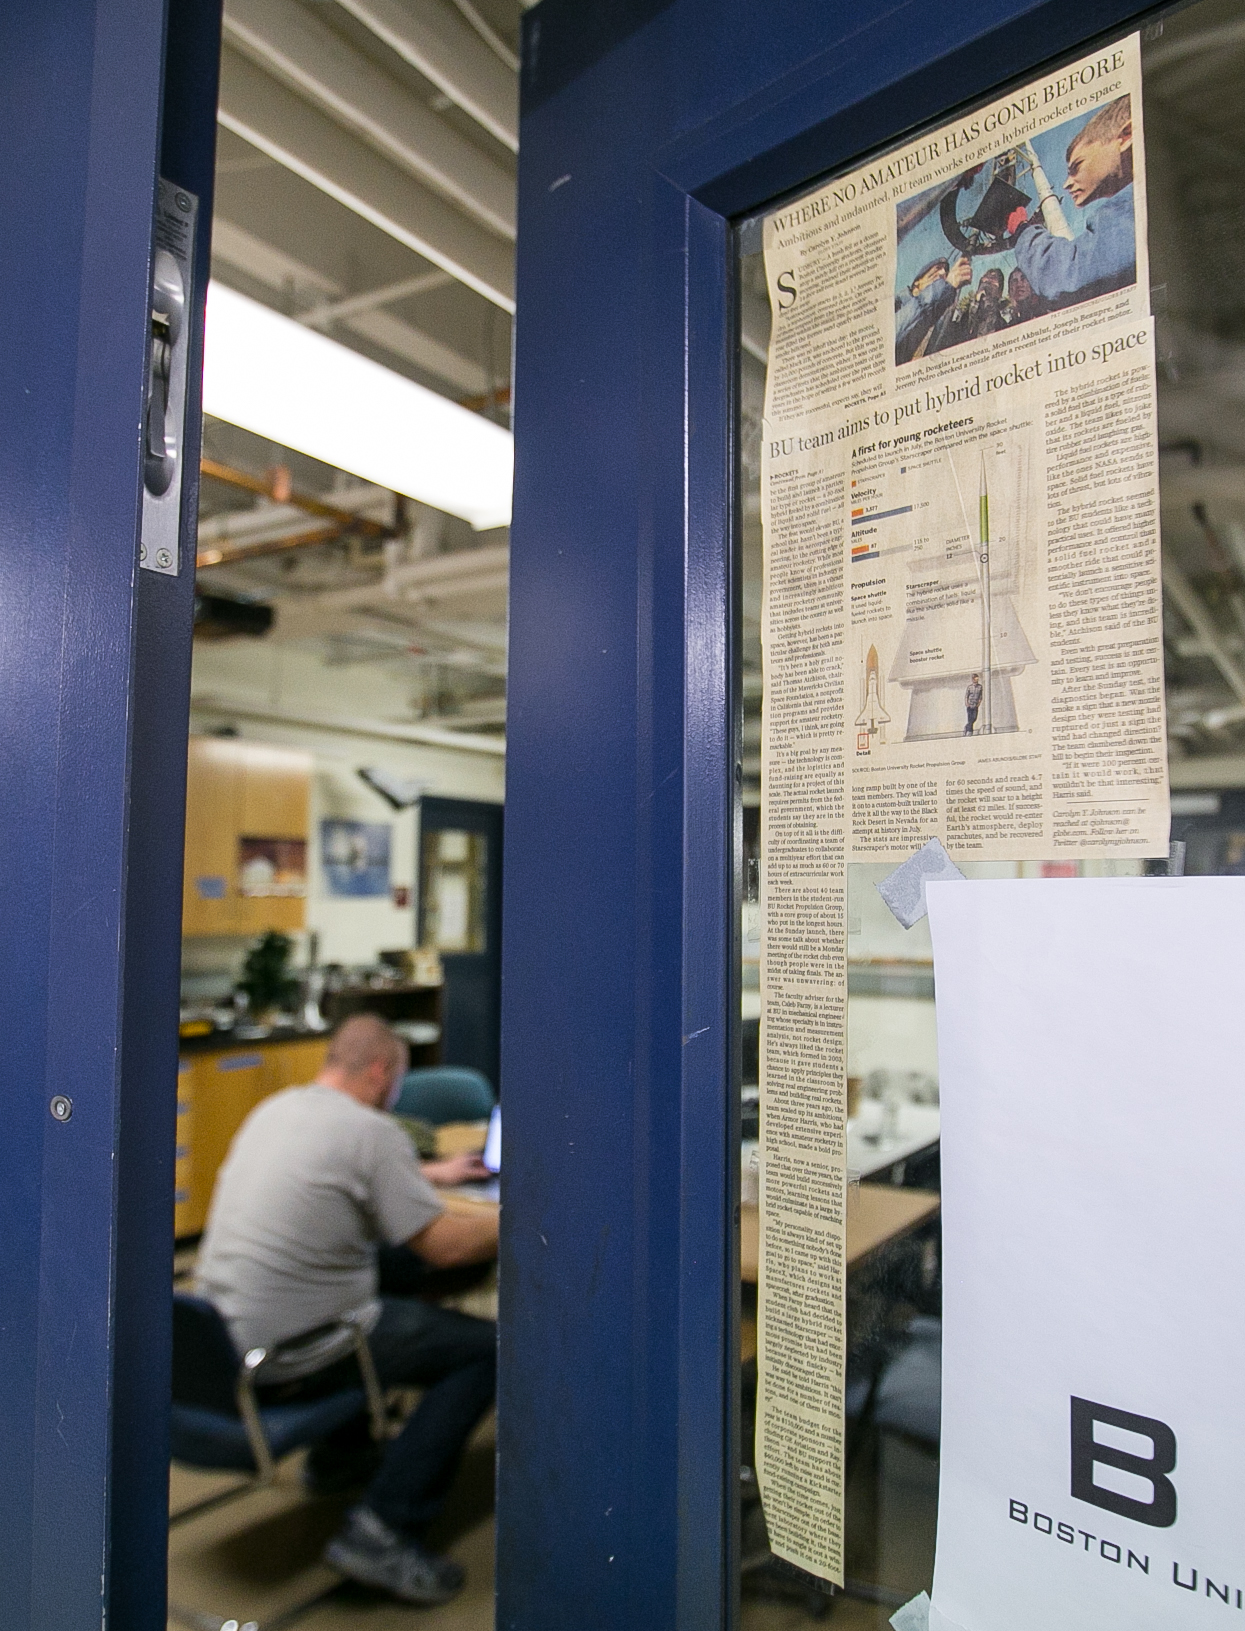 March 29, 2016 – The door of the Boston University Rocket Propulsion lab sits ajar as group member Pete Andrews works late into the night. Taped to the glass is a front page Boston Globe article featuring the team's recent accomplishments in rocket development. The group is working to assemble the newly developed liquid bi-propellant Lotus engine. Two of the Lotus engines will eventually be installed on the Starscraper, a 30 foot 1200 pound rocket, and launched from the Black Rock Desert in the summer of 2017. The Boston University team is in a tight race with the University of Southern California to be the first student designed and constructed rocket to reach space – or 62 miles above the earth's surface. ©Mike Schwarz